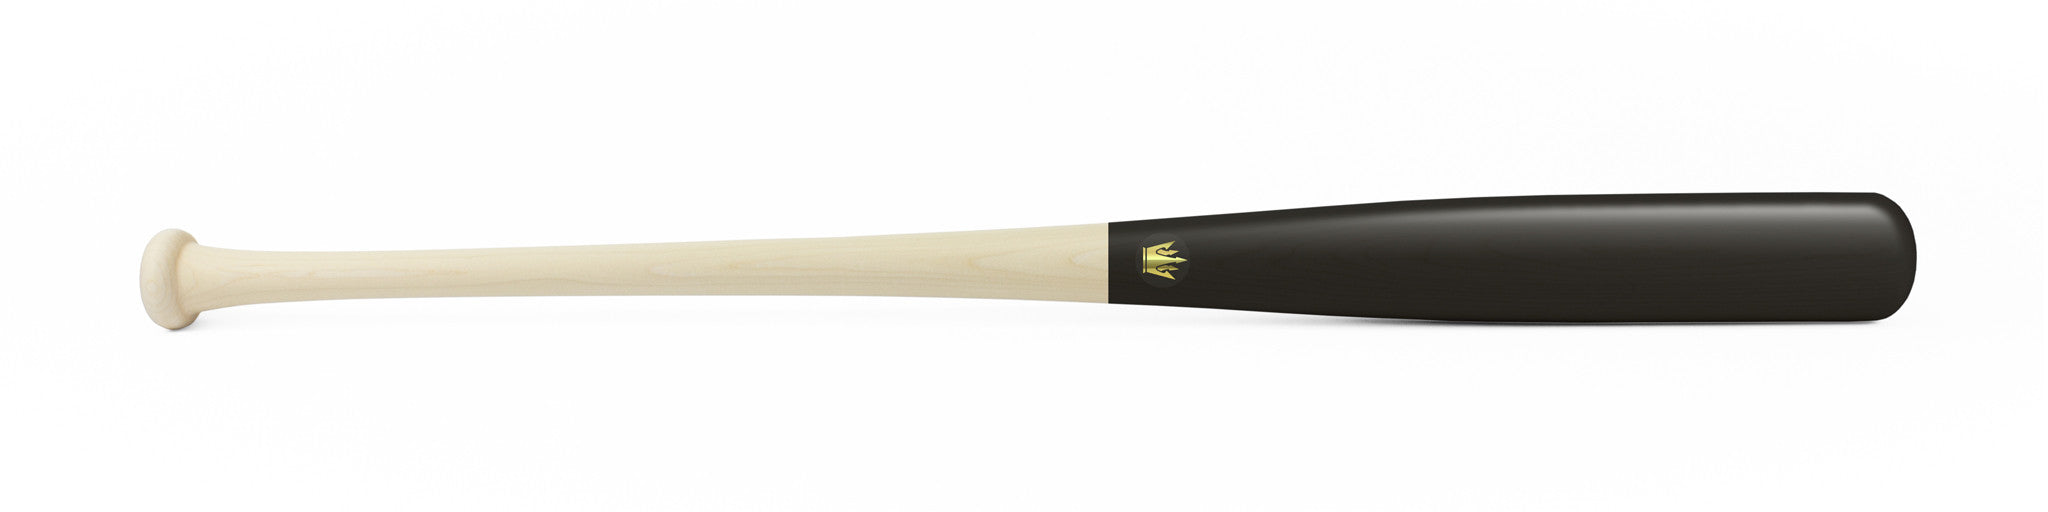 Wood bat - Maple model 318 Black Standard - 1